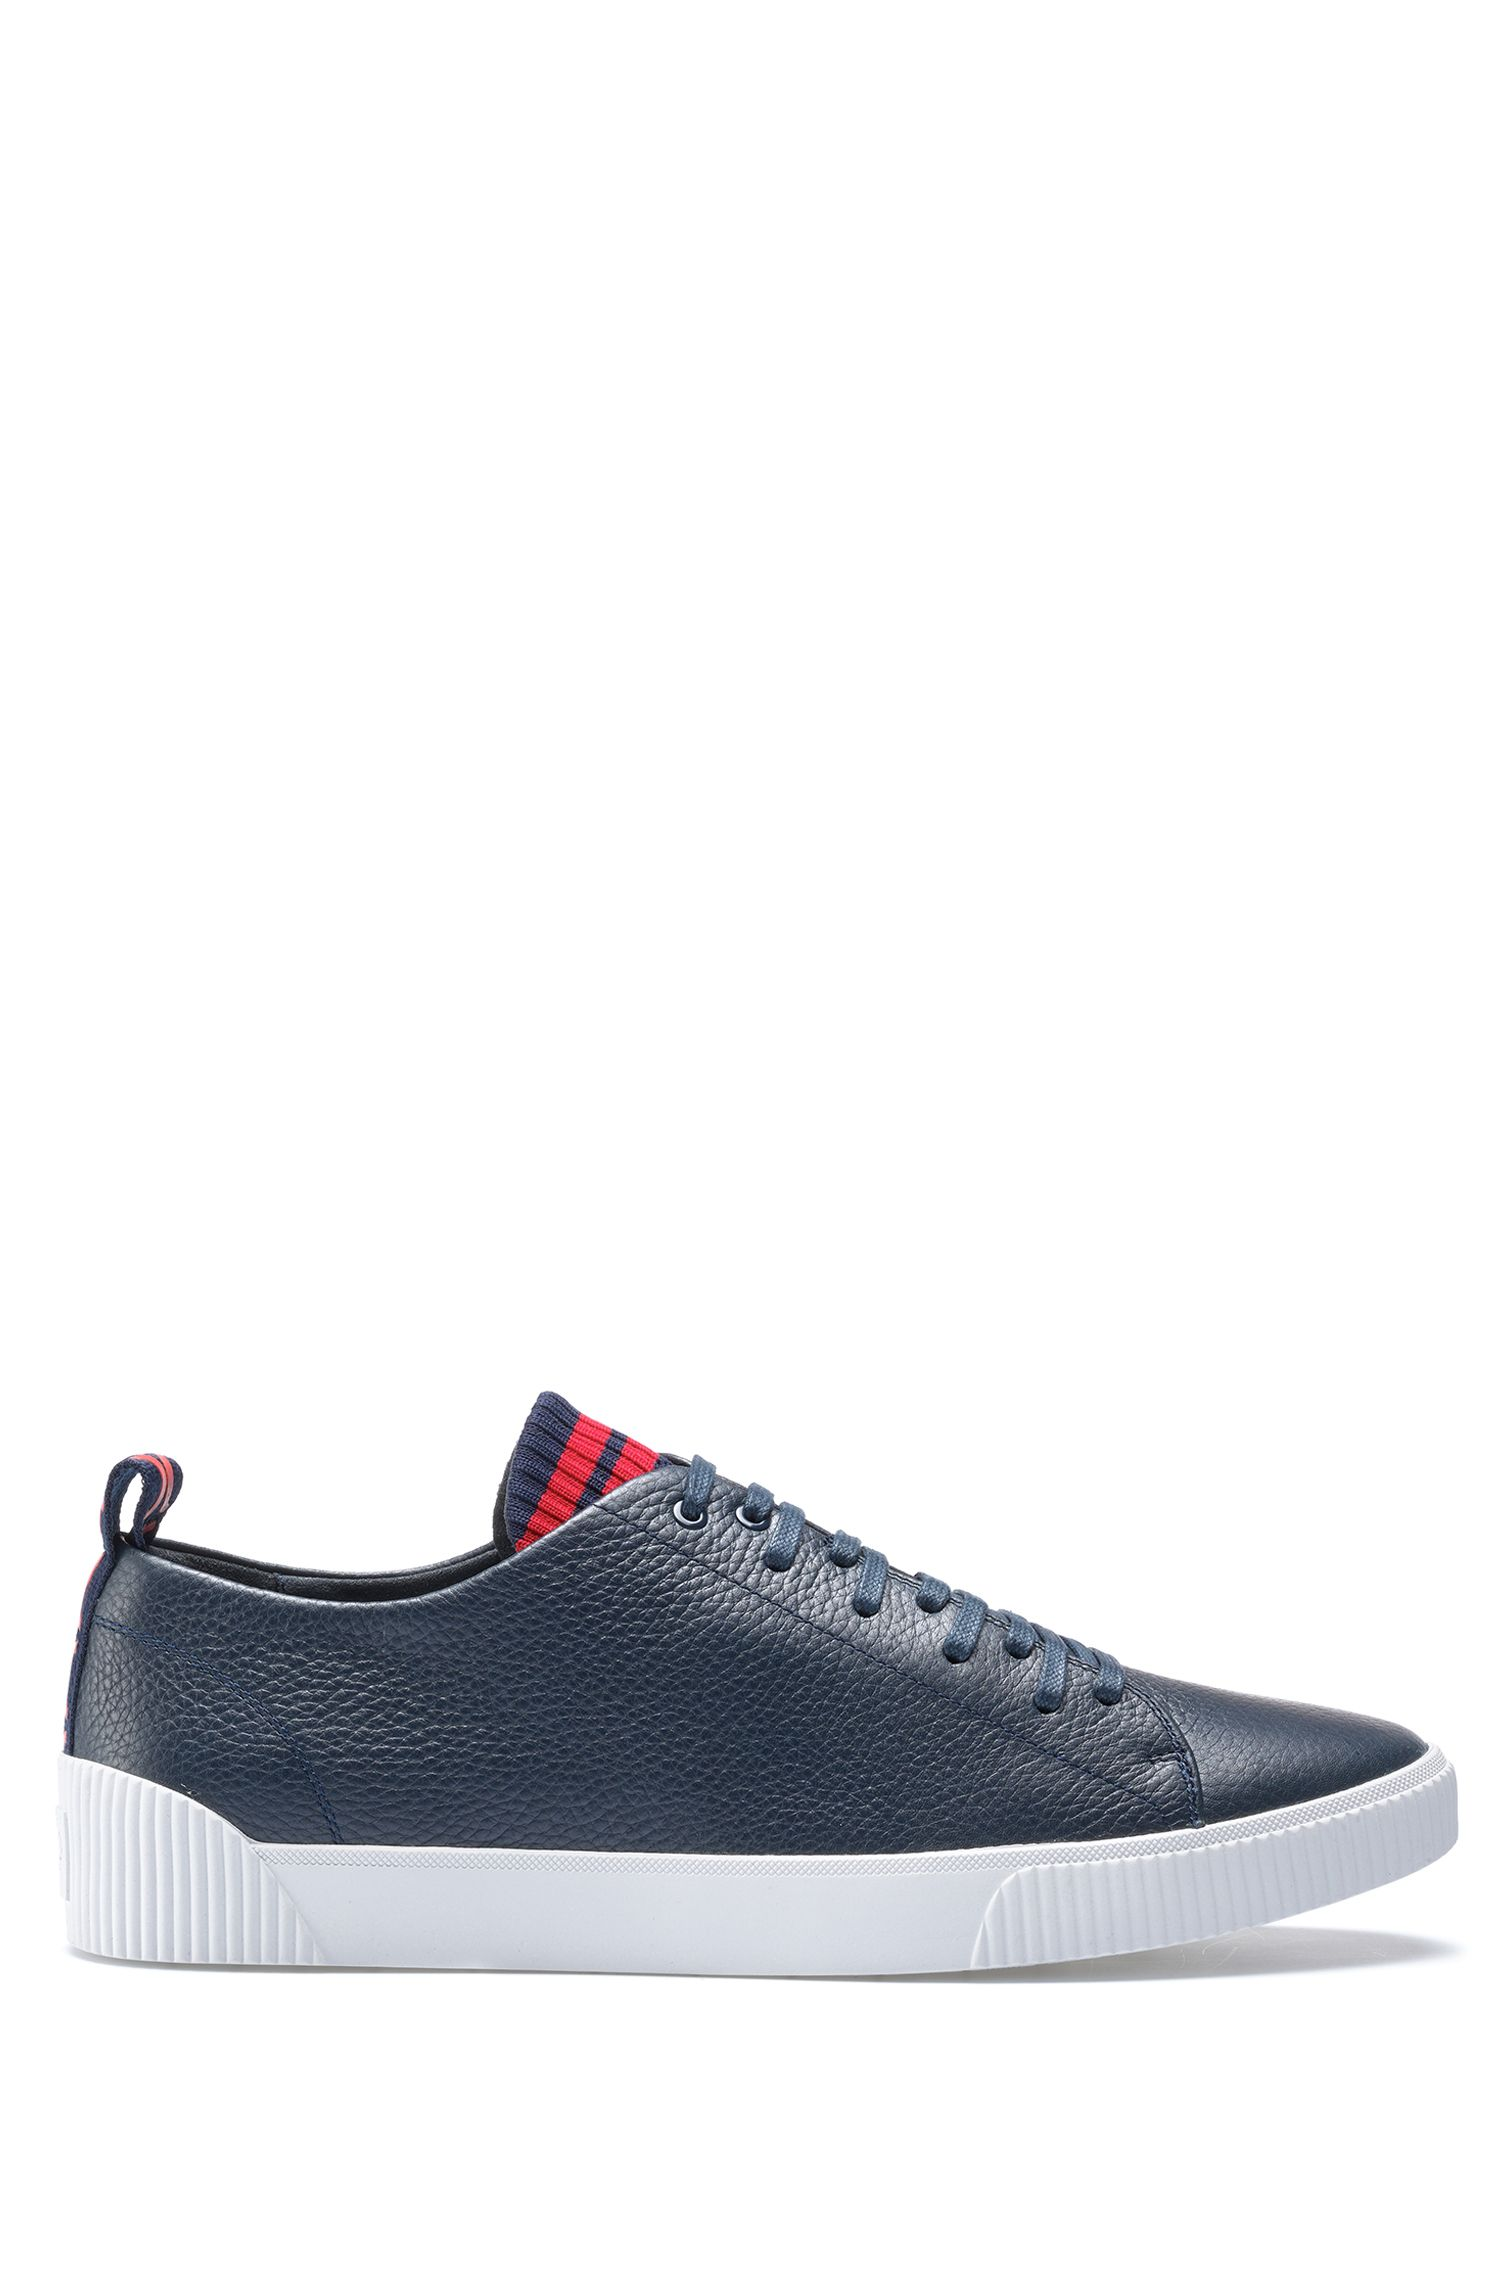 Sneakers in grained leather with original lace-up design, Dark Blue